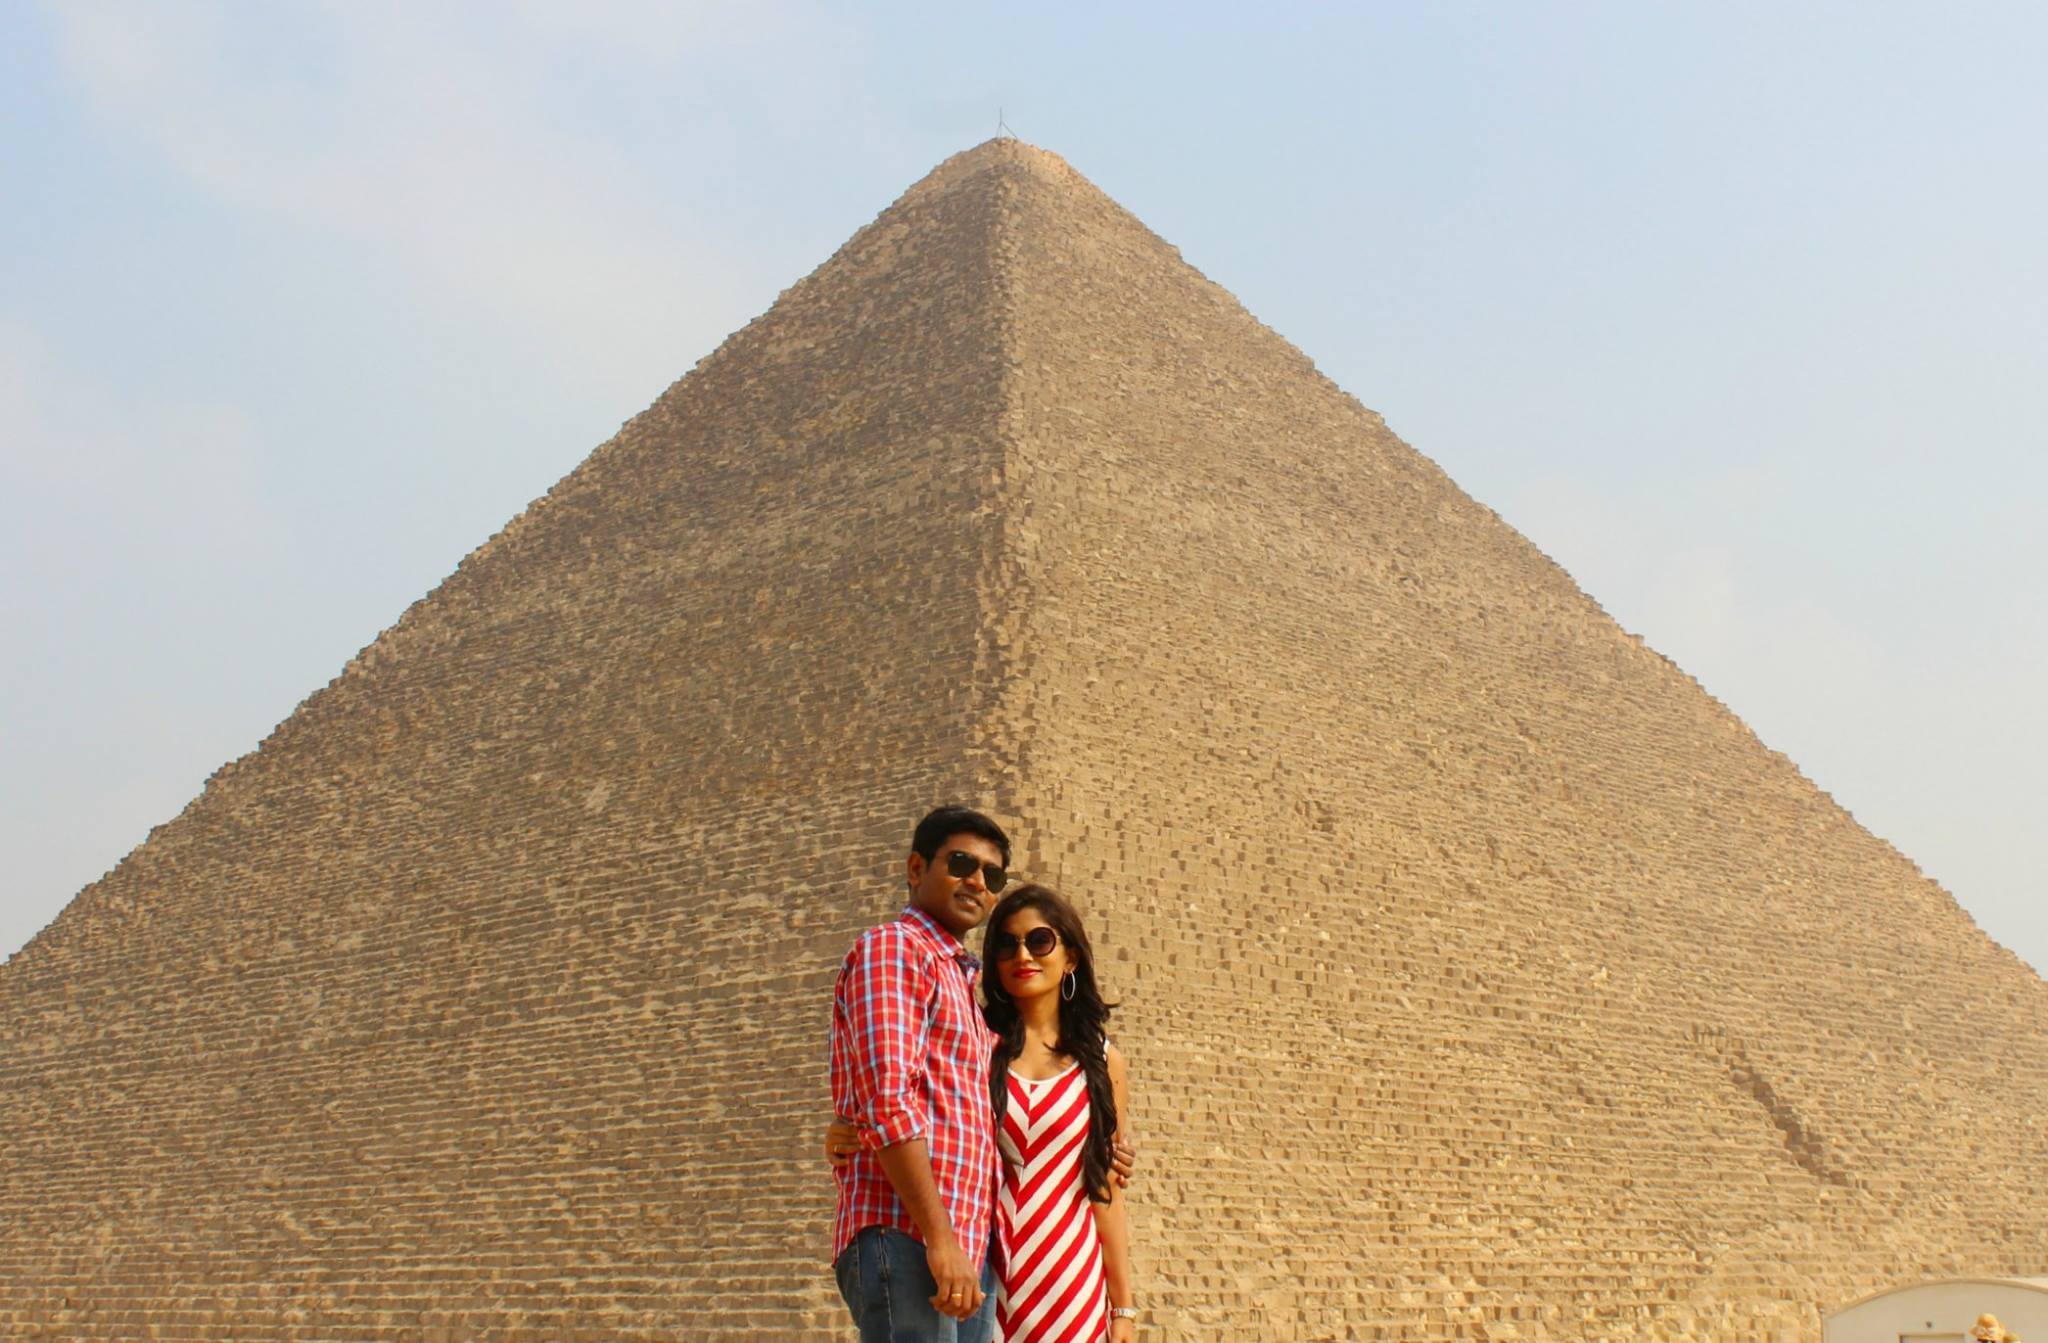 Pyramids! Sphinx! Mummies! We are in Egypt!!!